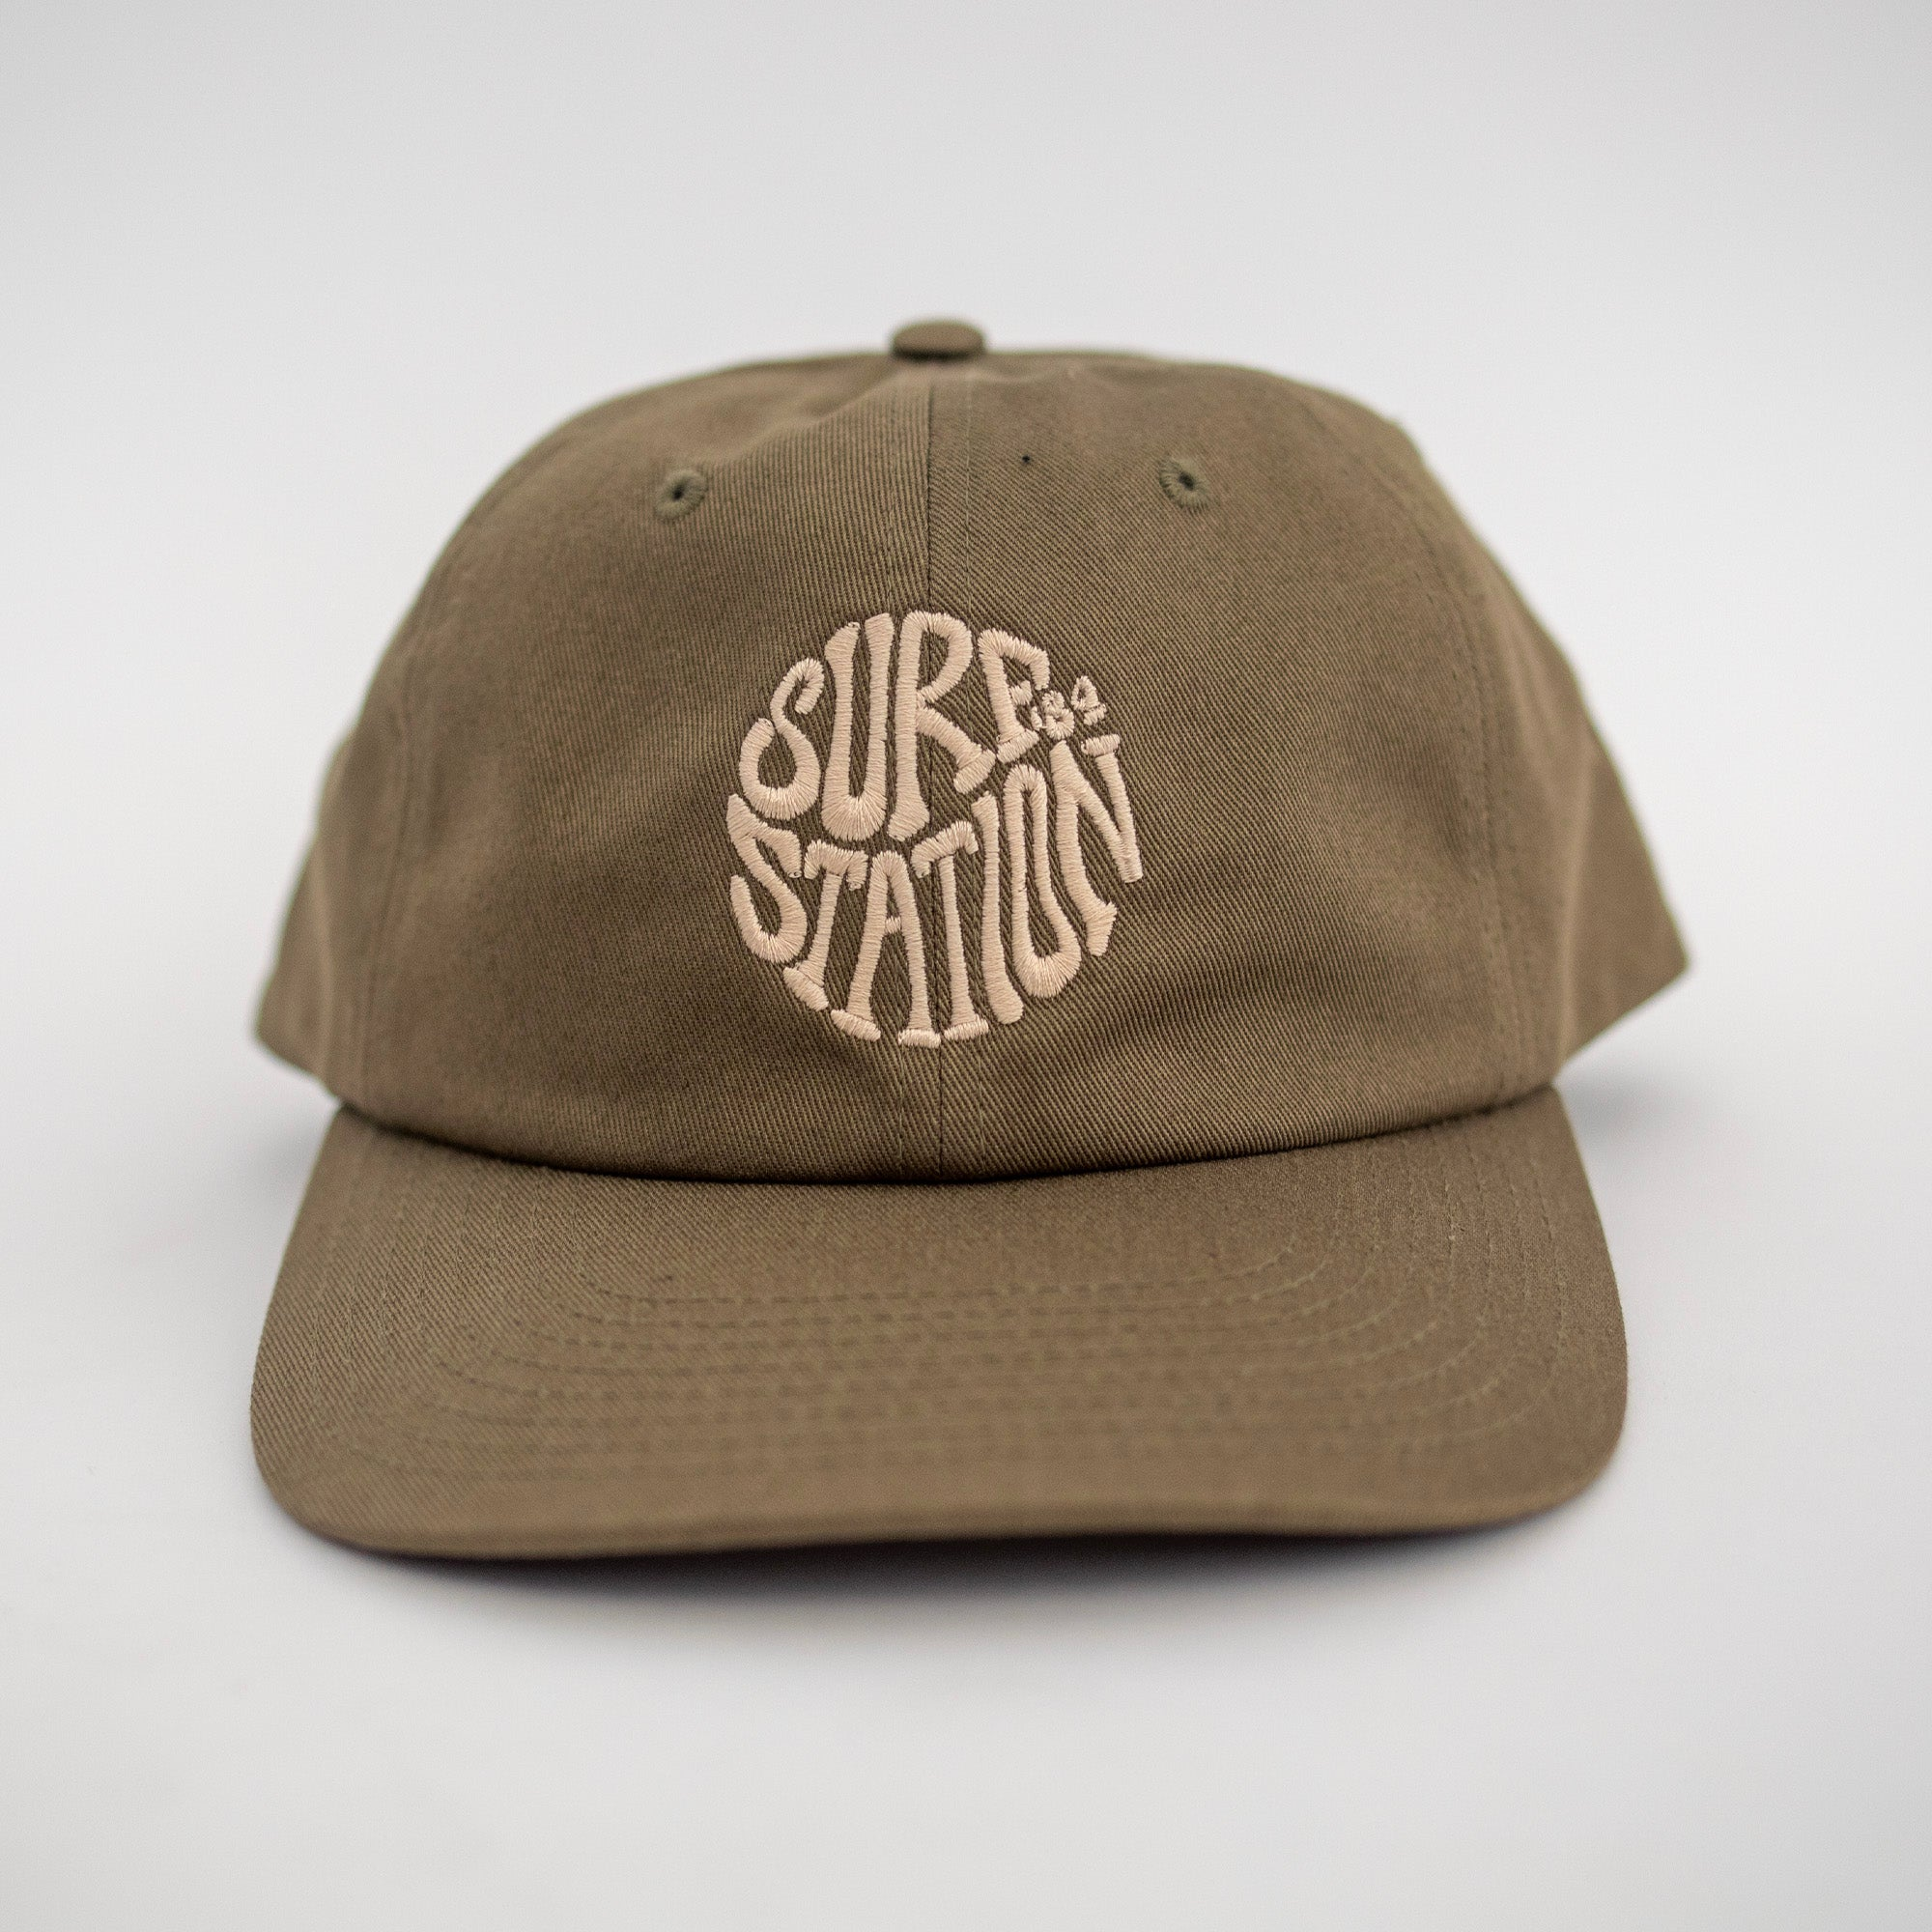 Surf Station '84/Oldest City Adjustable Men's Hat